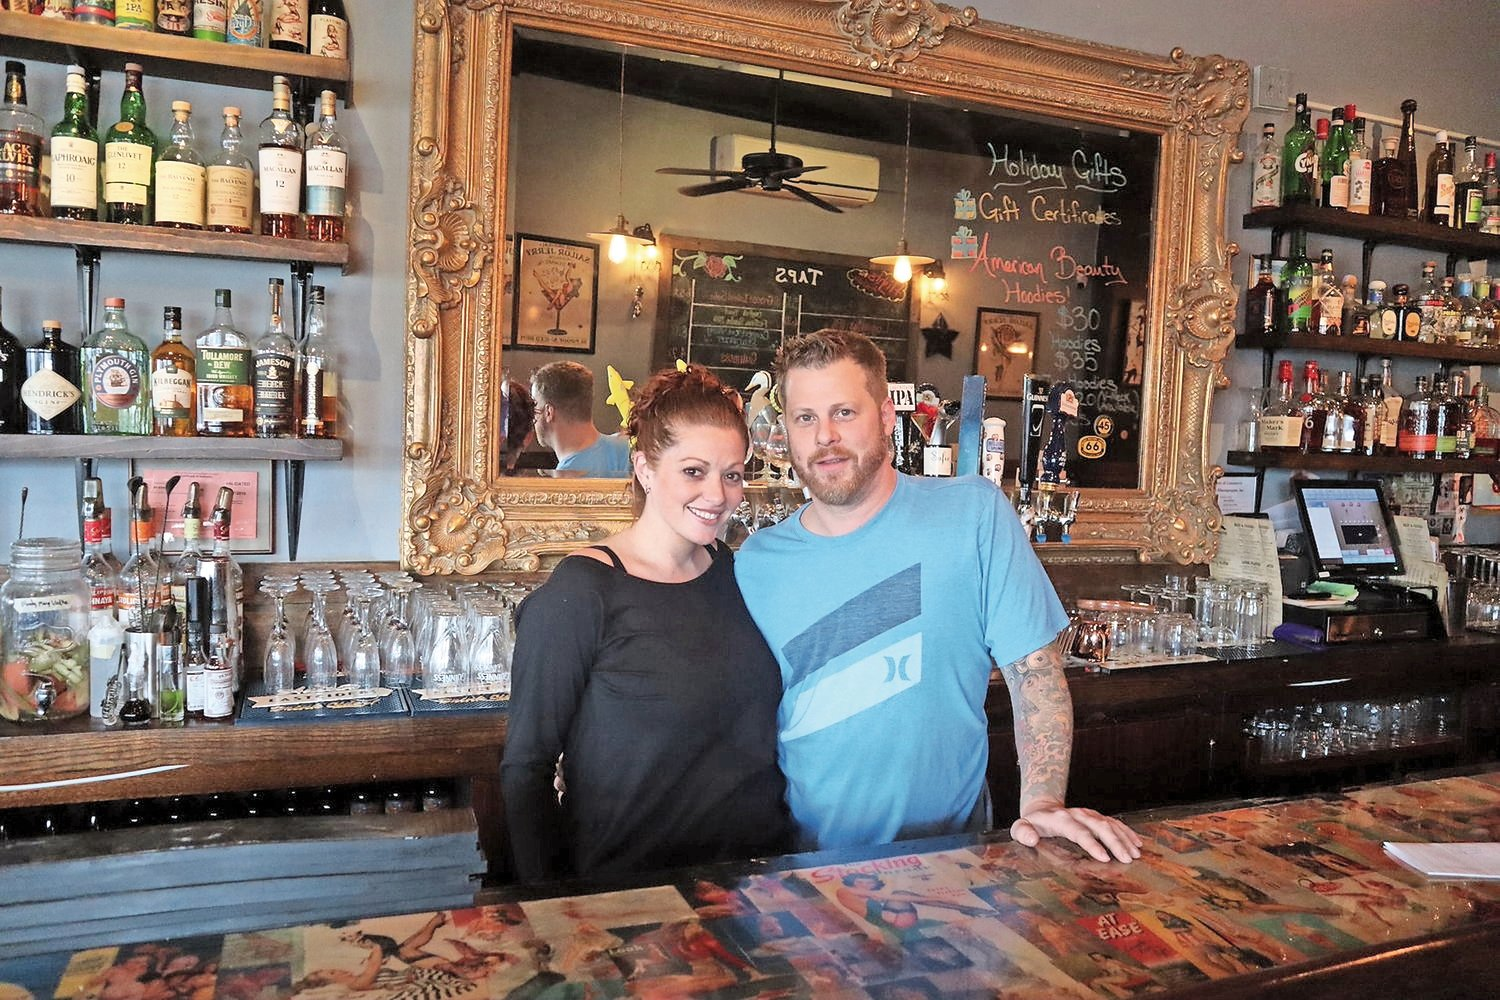 American Beauty Bar & Grill owner Maria Cassano said she hoped to open the Bellmore spot by April 1. She owns the restaurant with her husband, Michael.